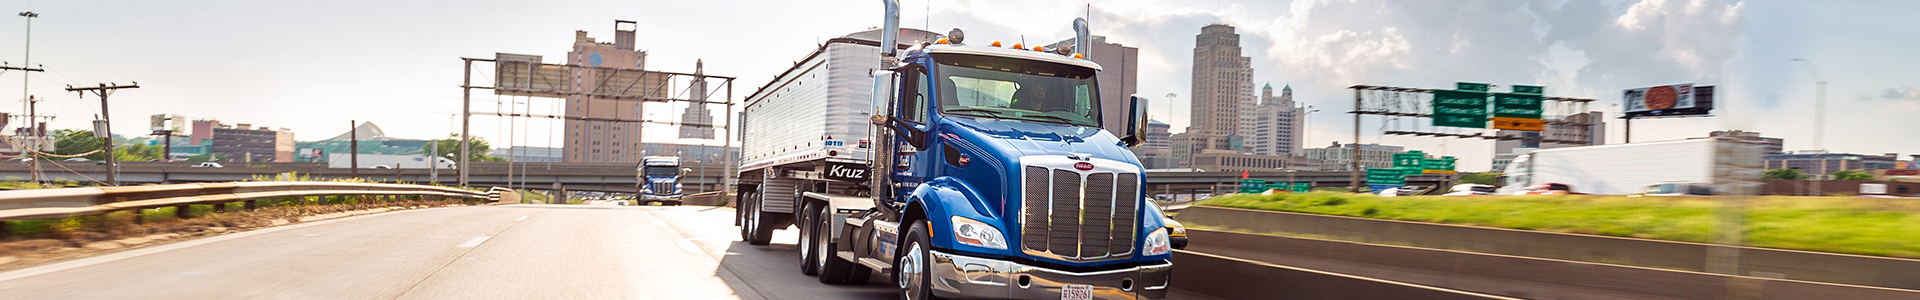 Trucking with Pavlich Inc serves local, regional and nationwide needs.